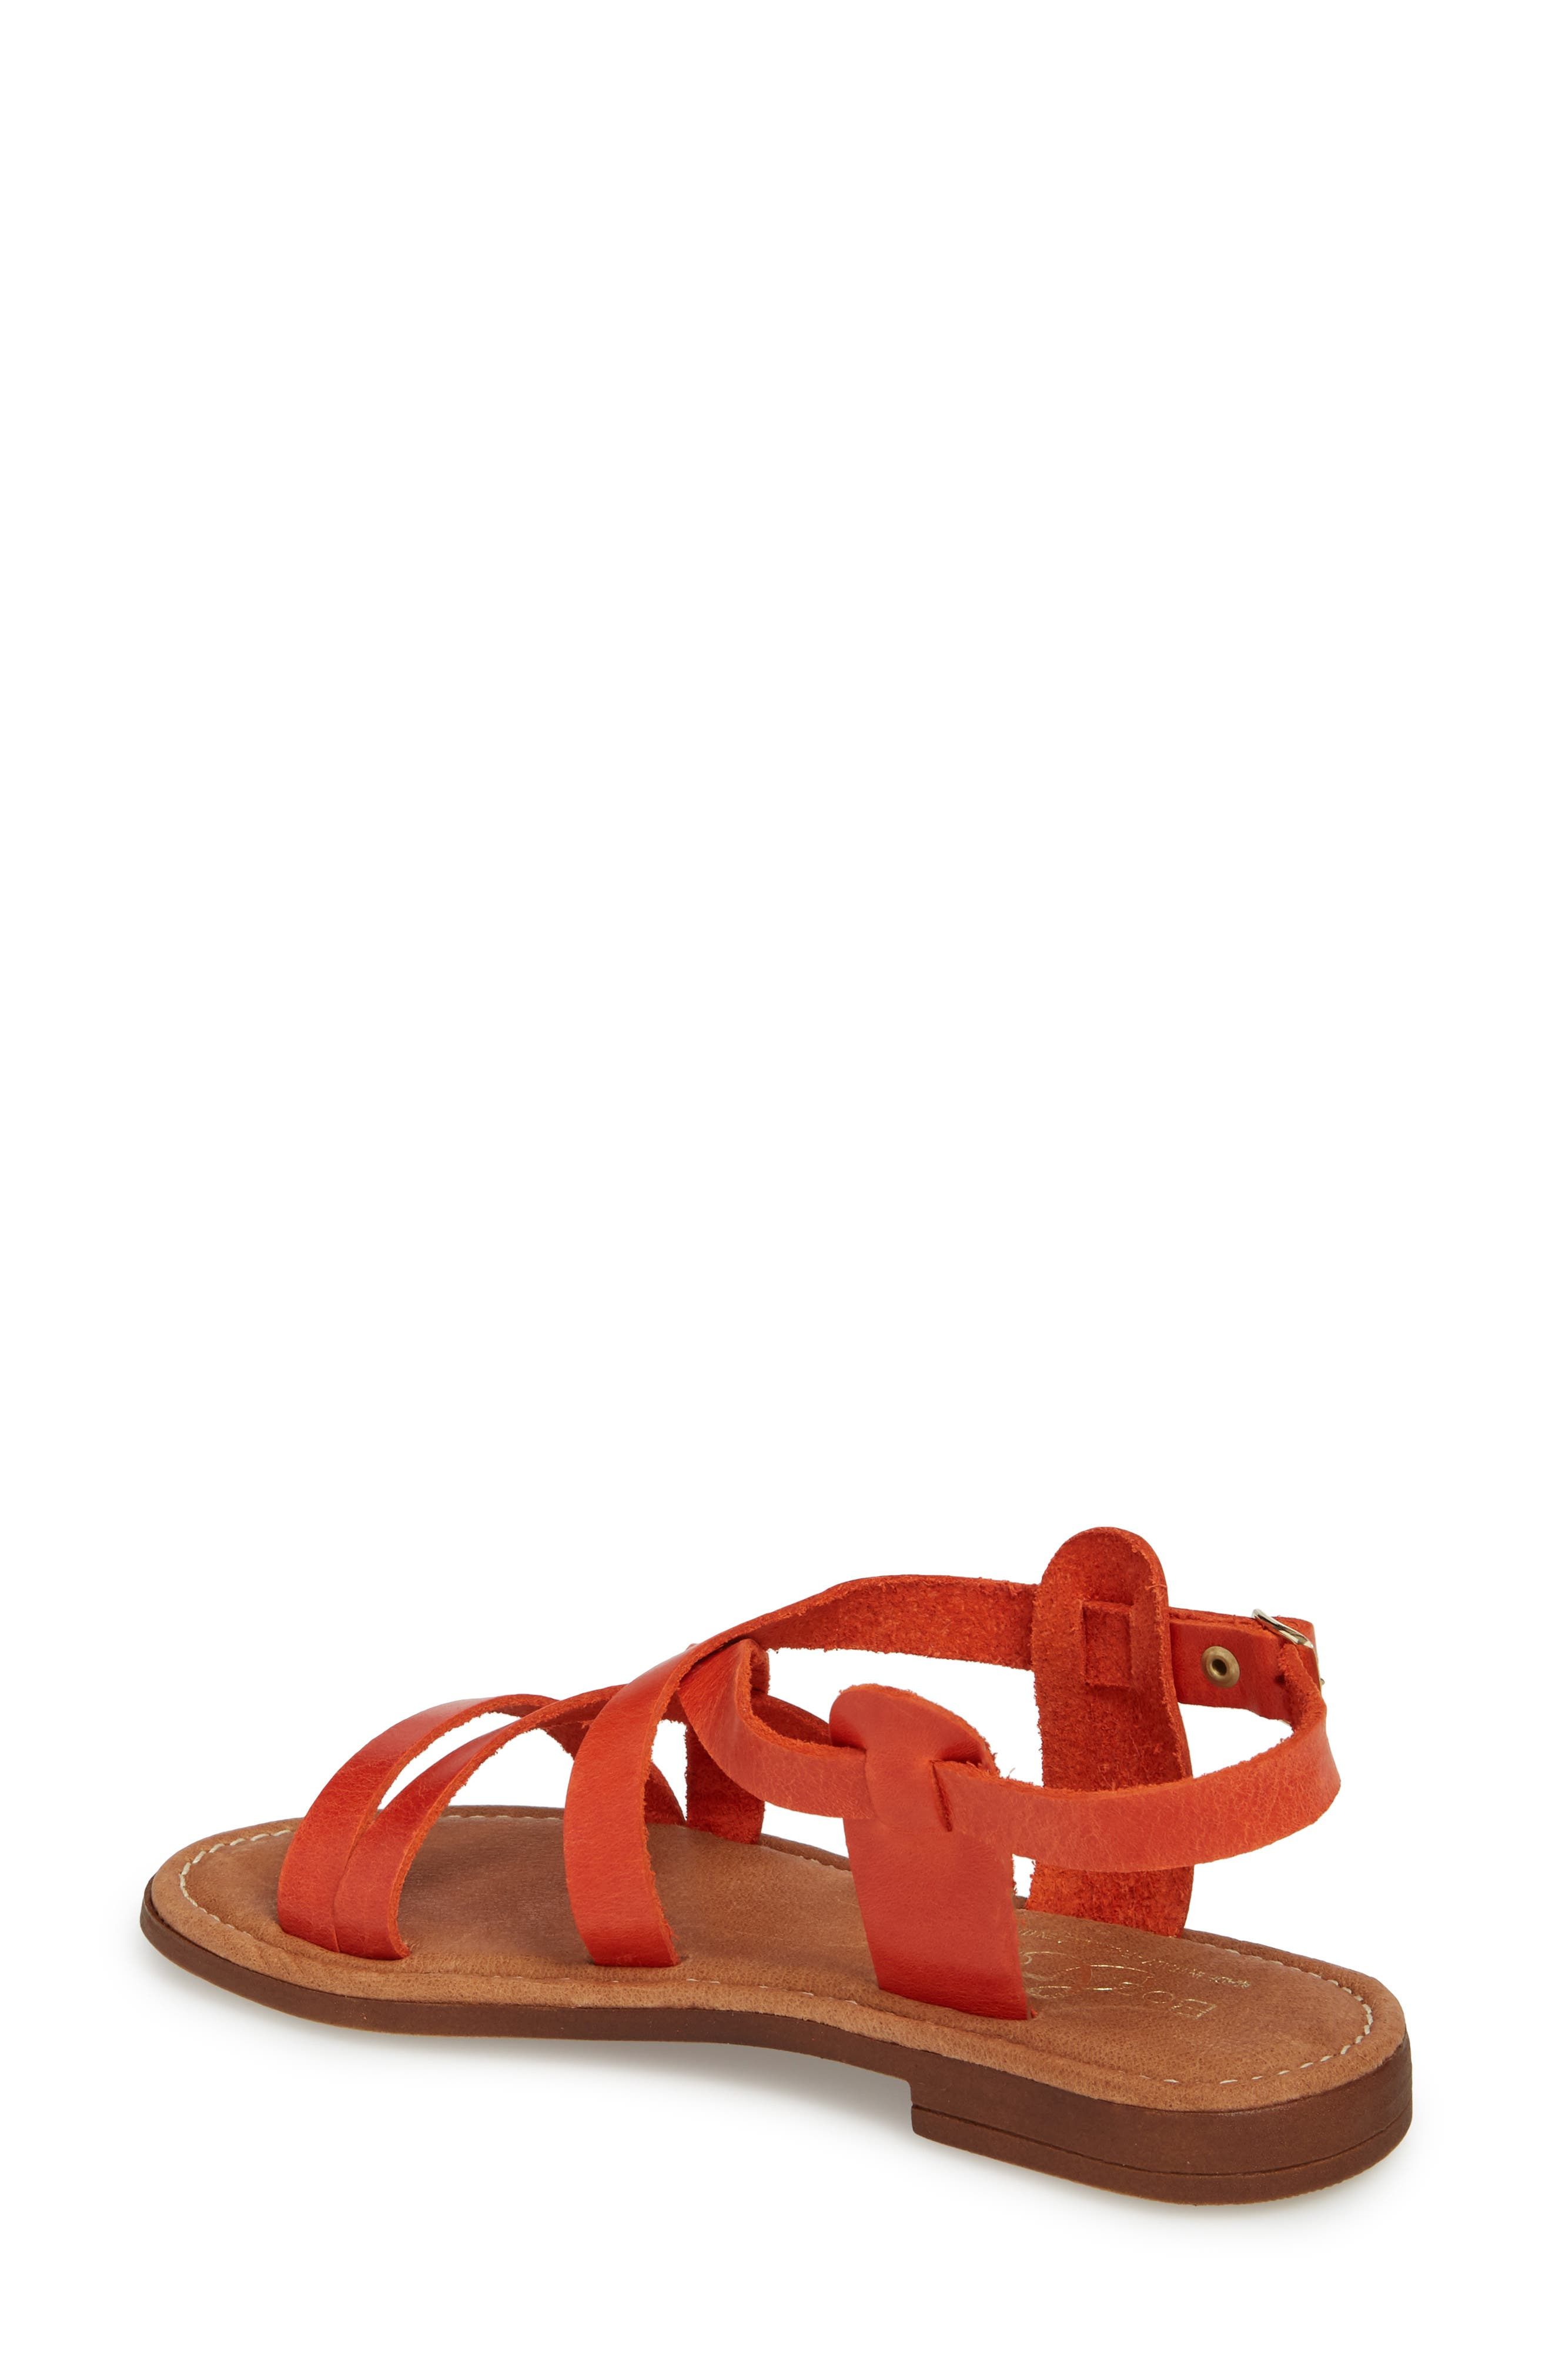 Ionna Sandal,                             Alternate thumbnail 2, color,                             Tangerine Leather